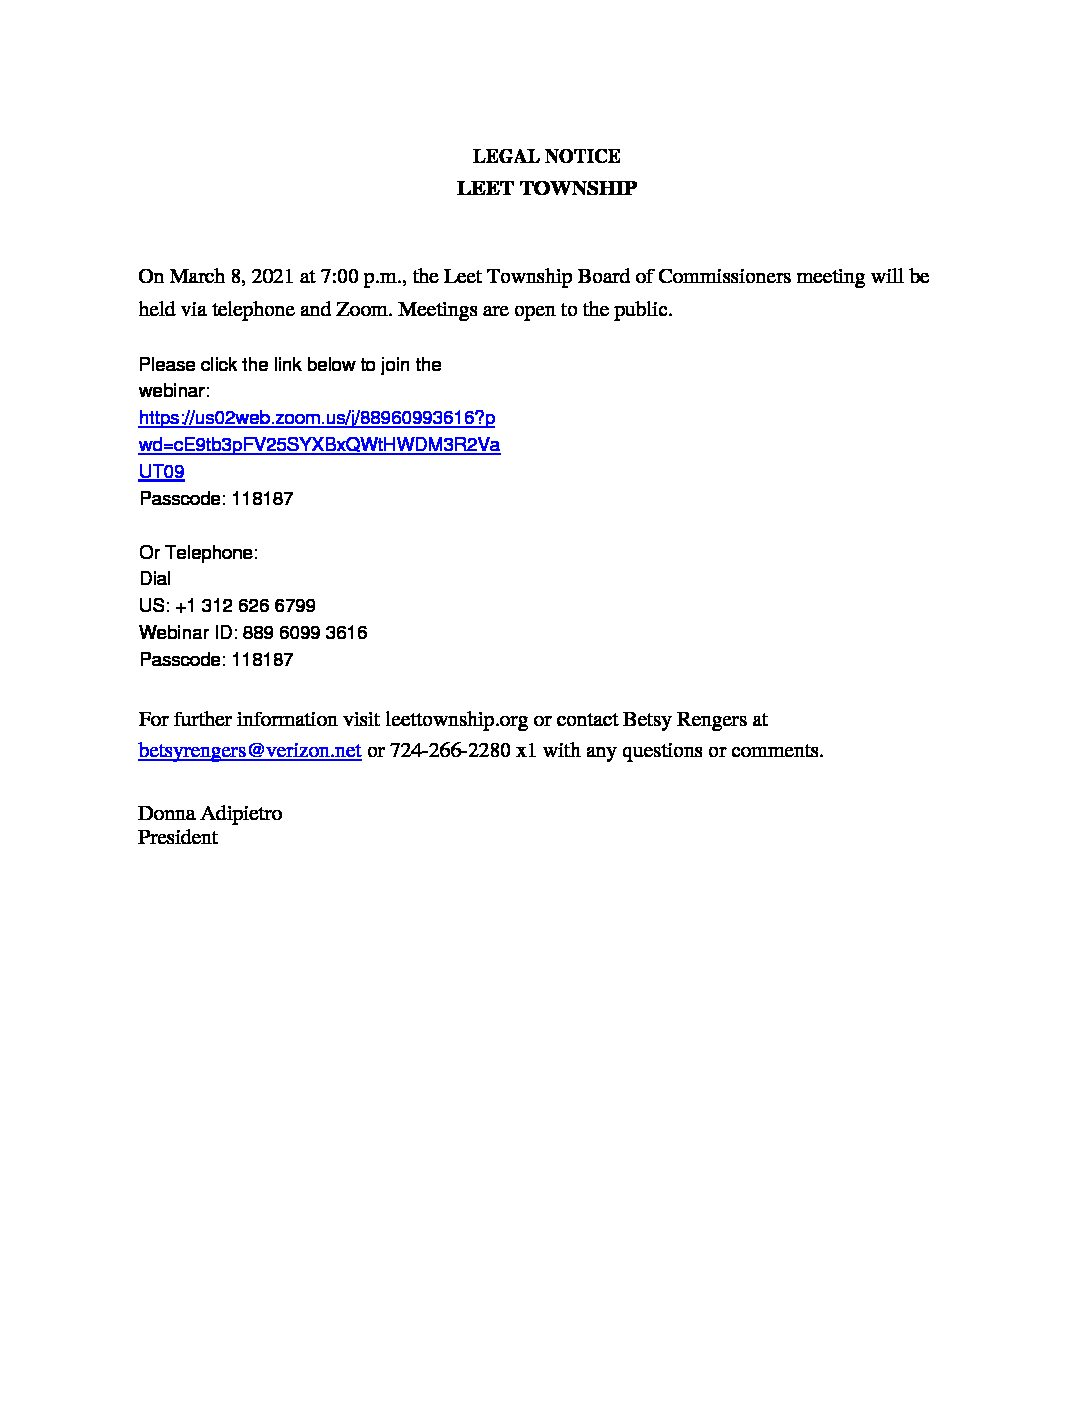 OFFICIAL NOTICE remote meetings BOC March 8, 2021